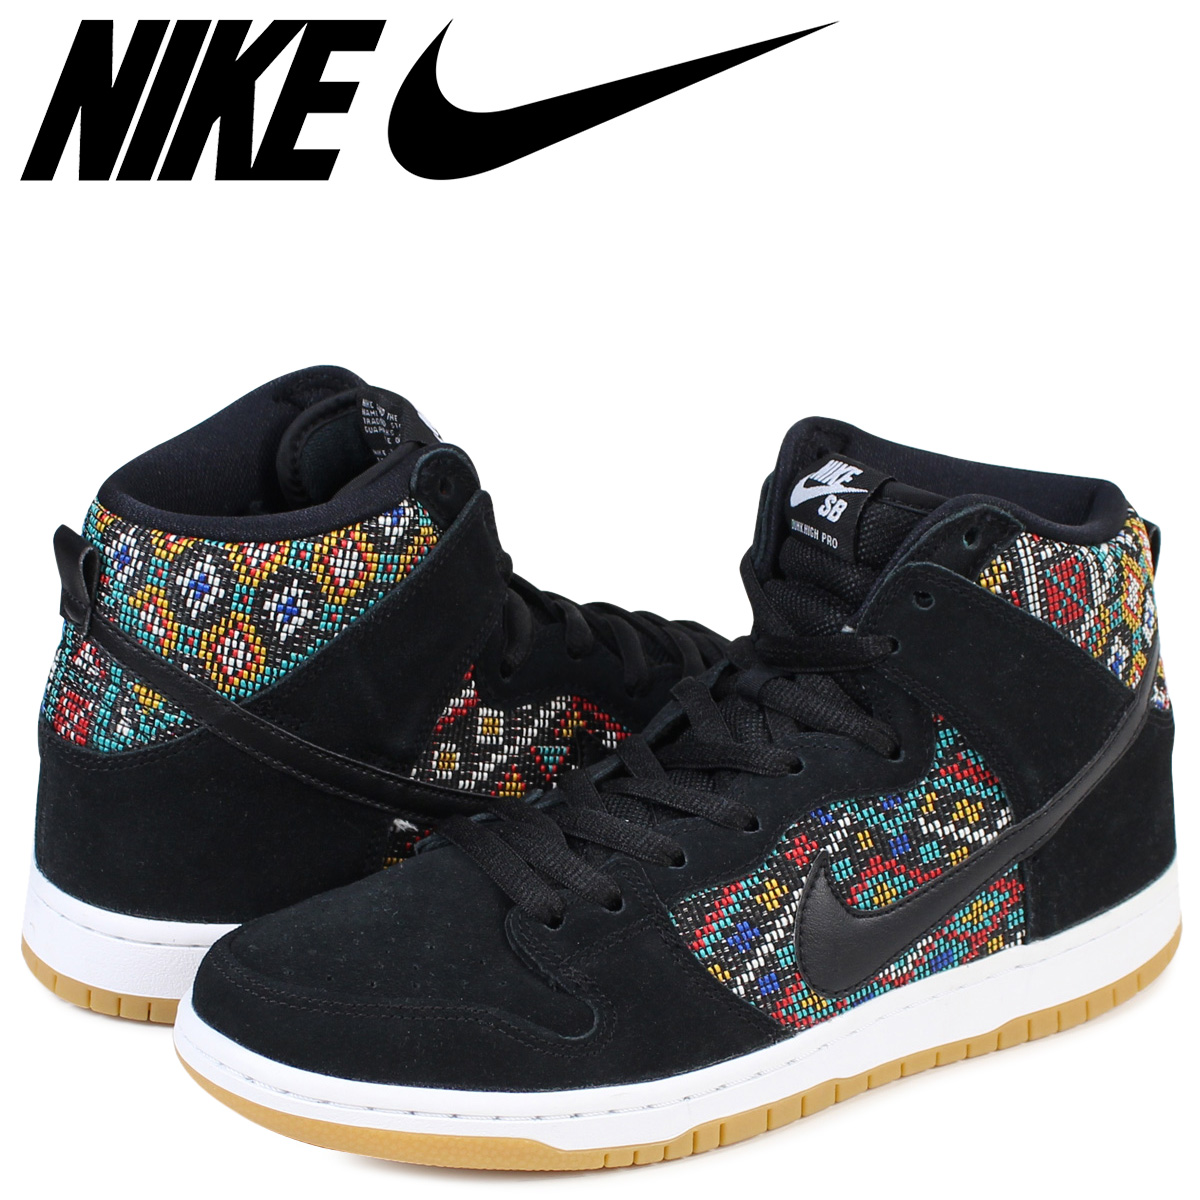 best service e28d3 a37ff NIKE SB DUNK HIGH PREMIUM SEAT COVER Nike dunk high sneakers 313,171-030  men's shoes black